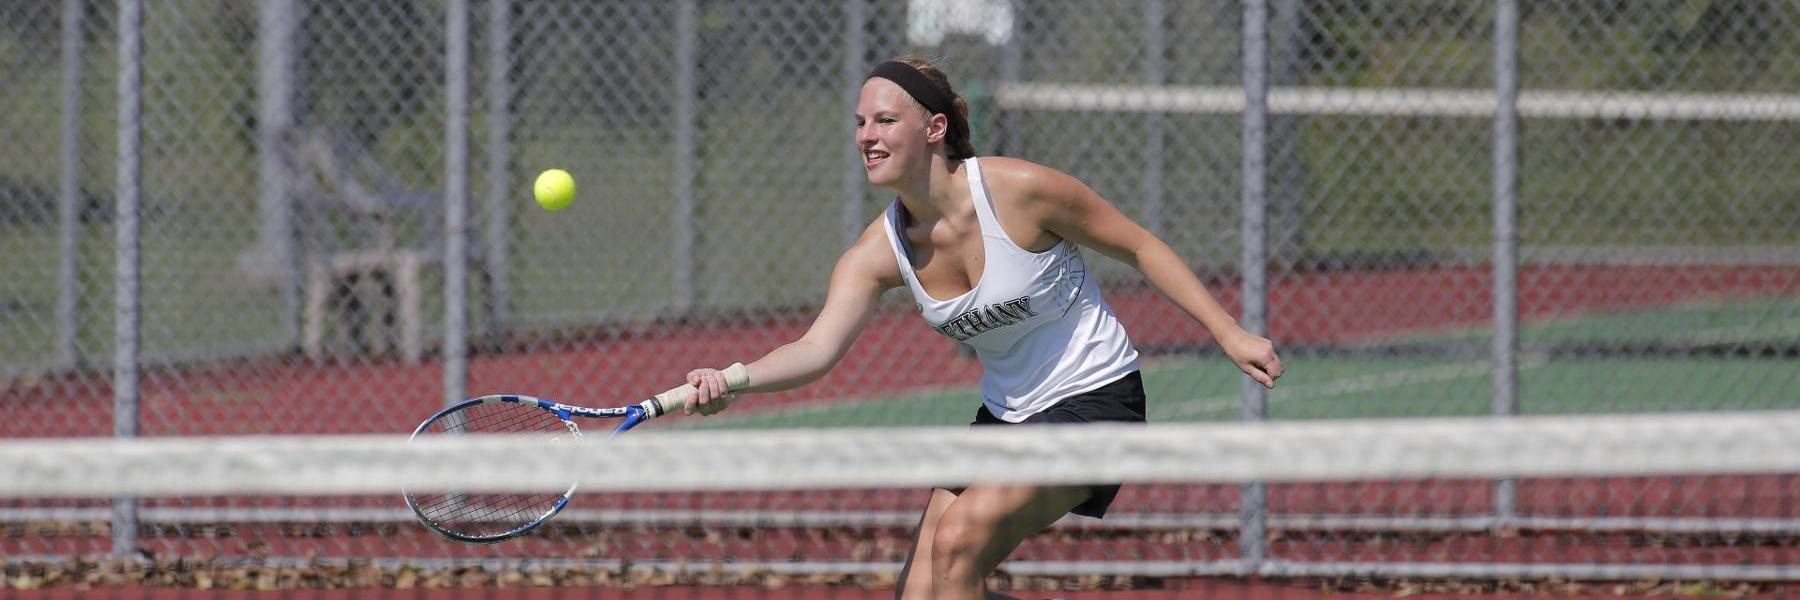 Women's Tennis takes 9-0 loss to Mount Aloysius